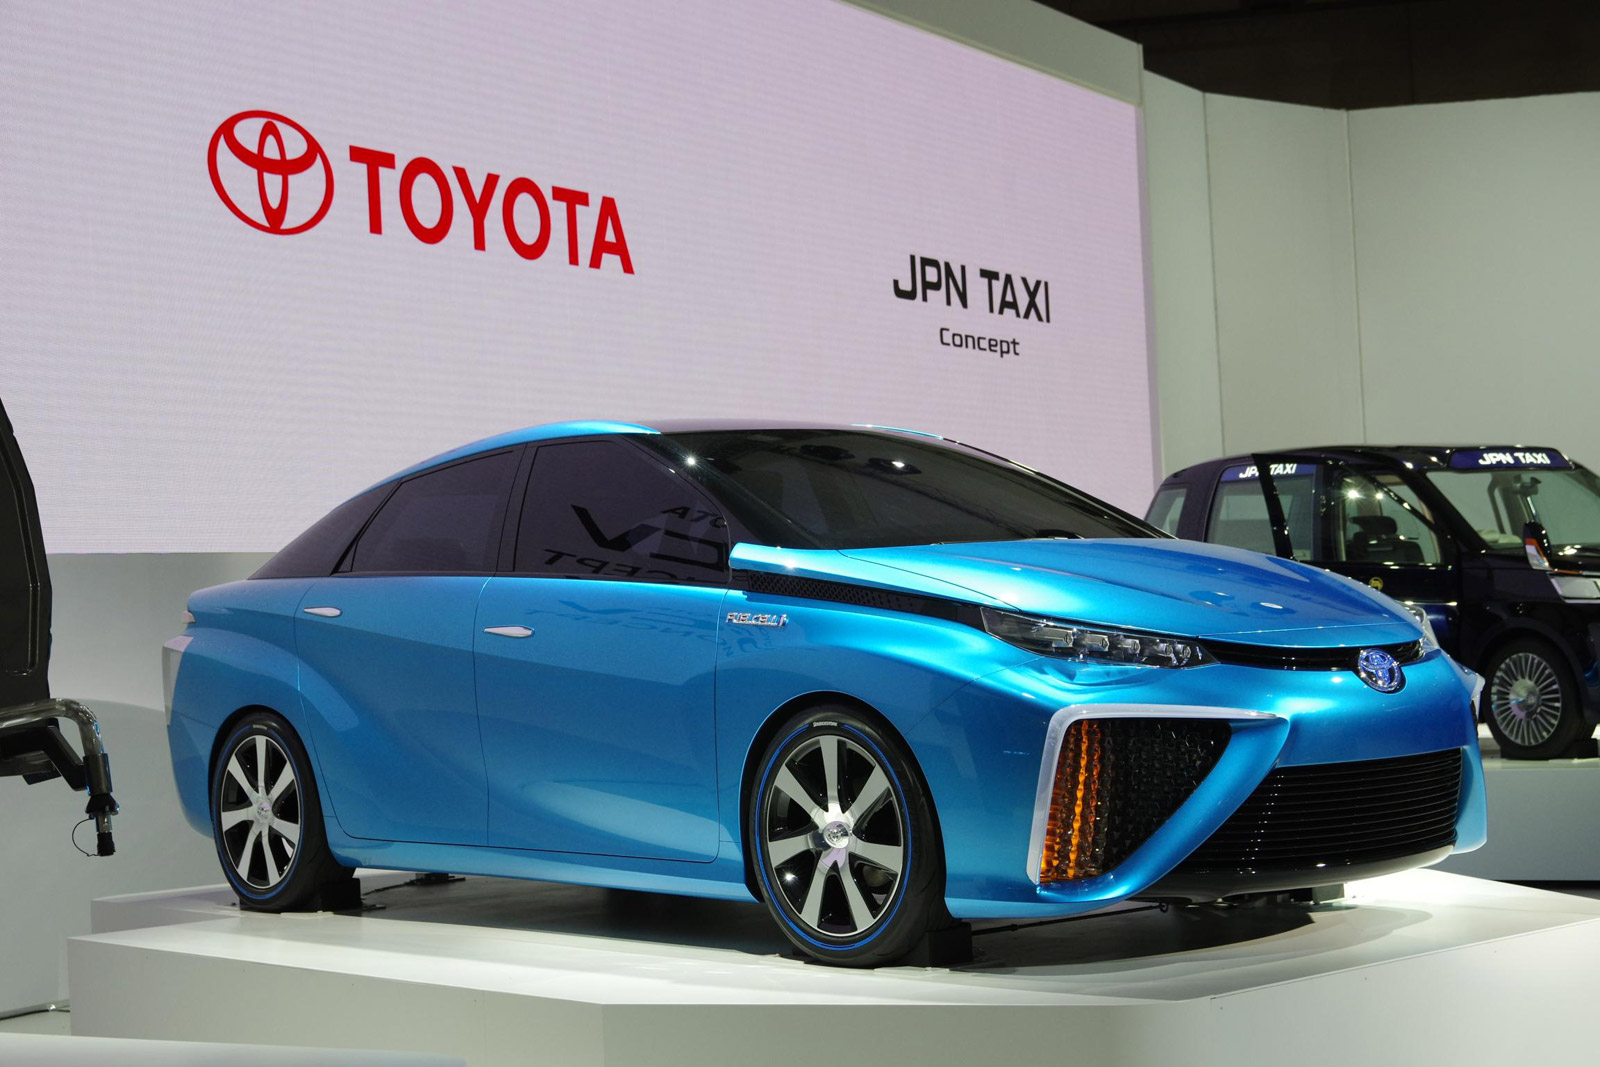 New Cars Coming Out What New Electric Cars Are Coming Out 2017 Ototrends